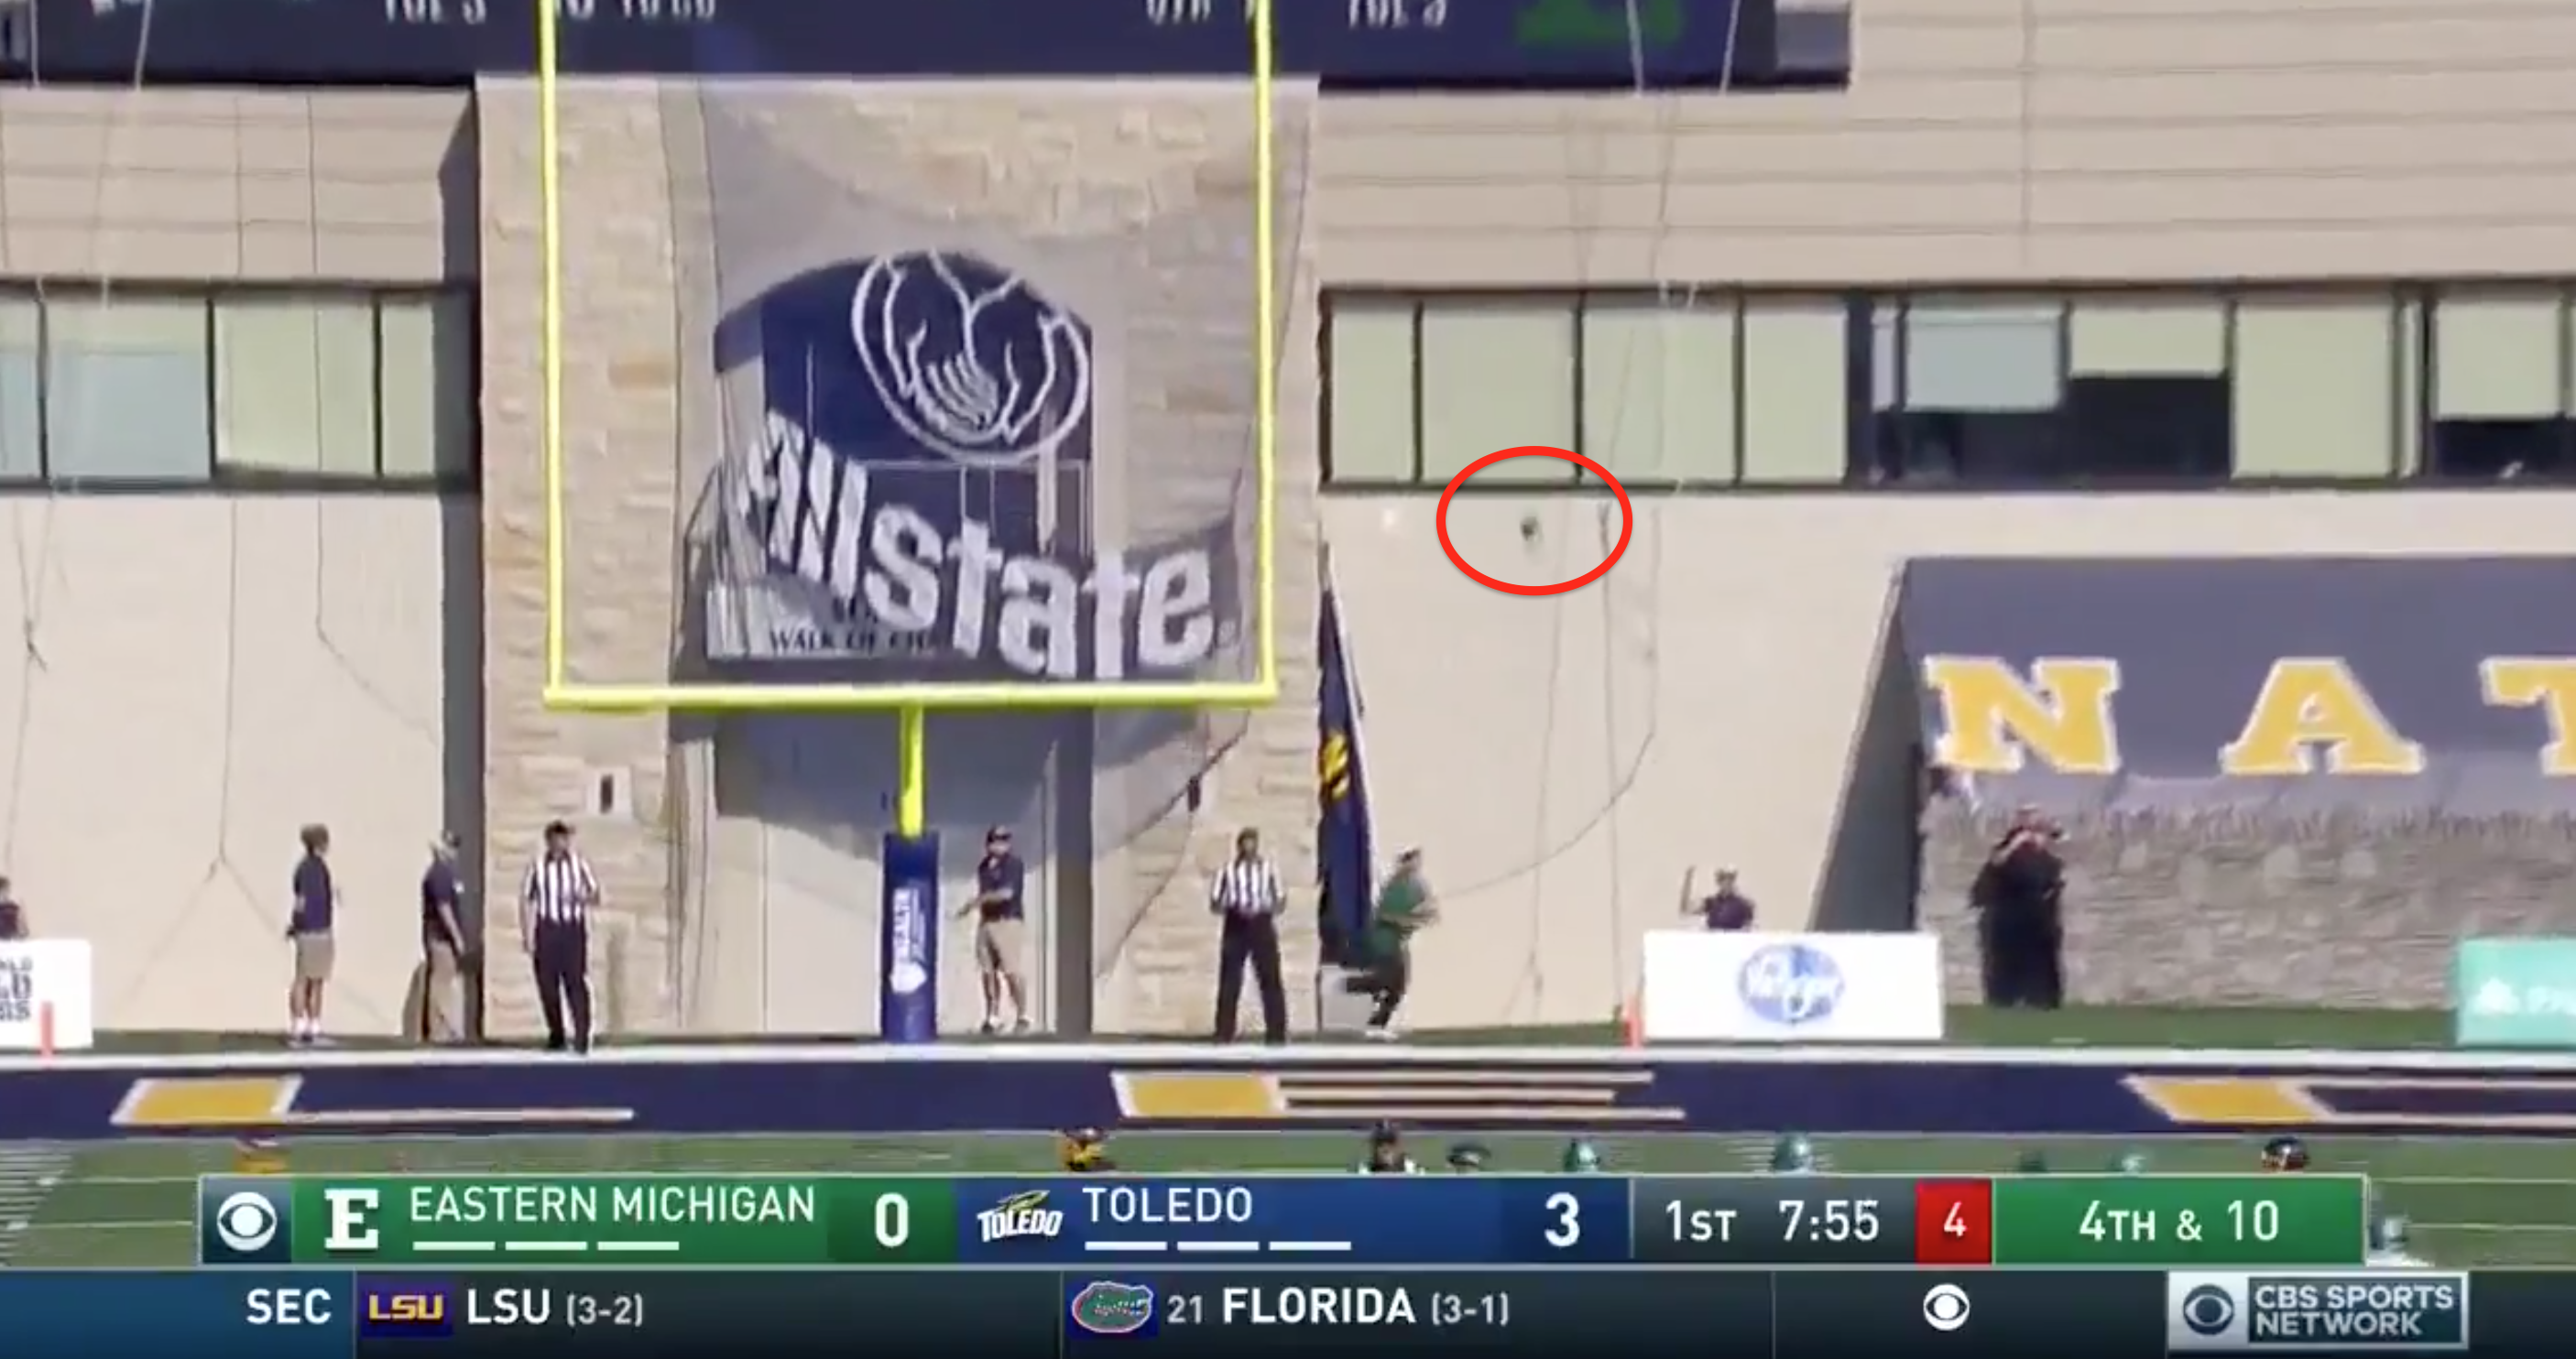 CBS Sports Network analyst Jay Feely thought this kick was good